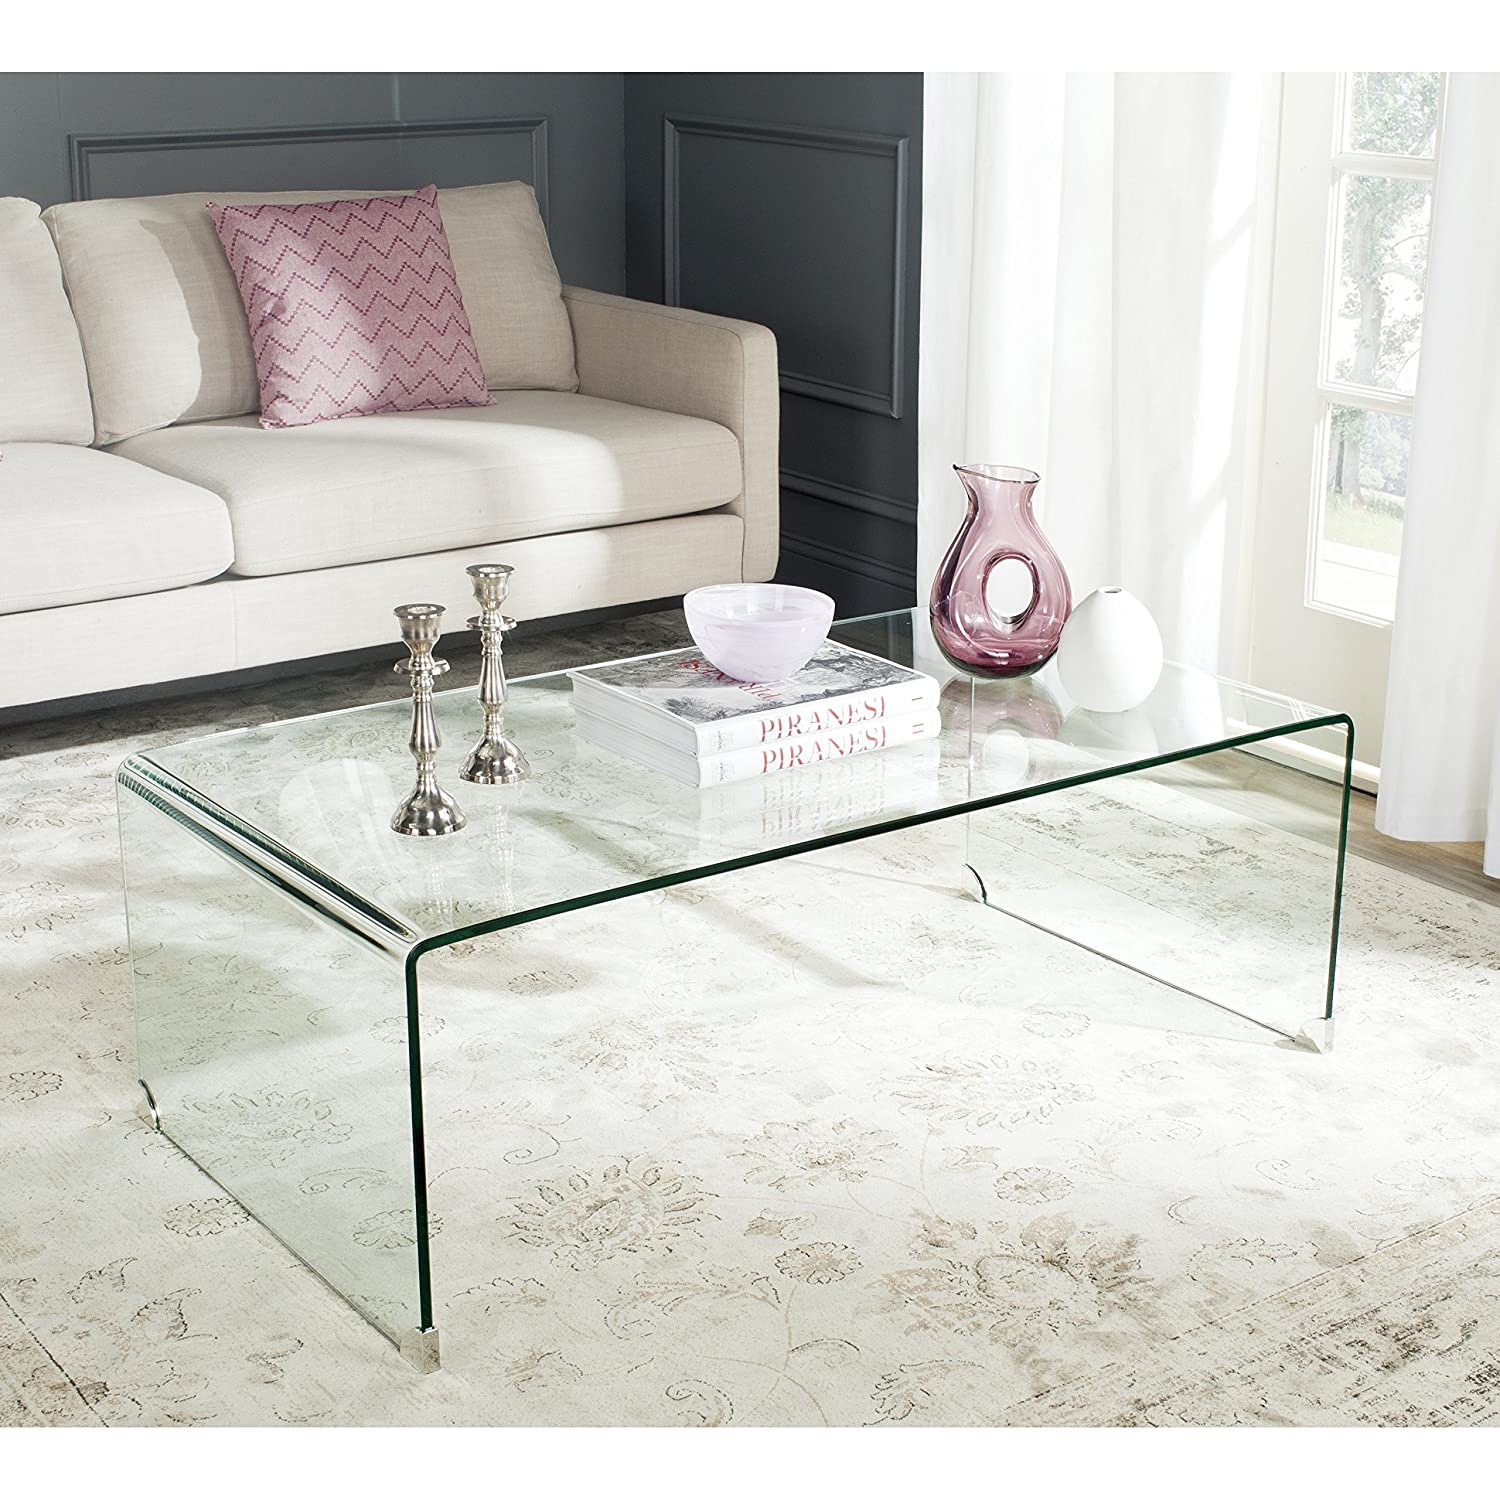 living table black gpojfgn coffee decorate glass tables elegant with your house contemporary an magnificent to way shelf room modern